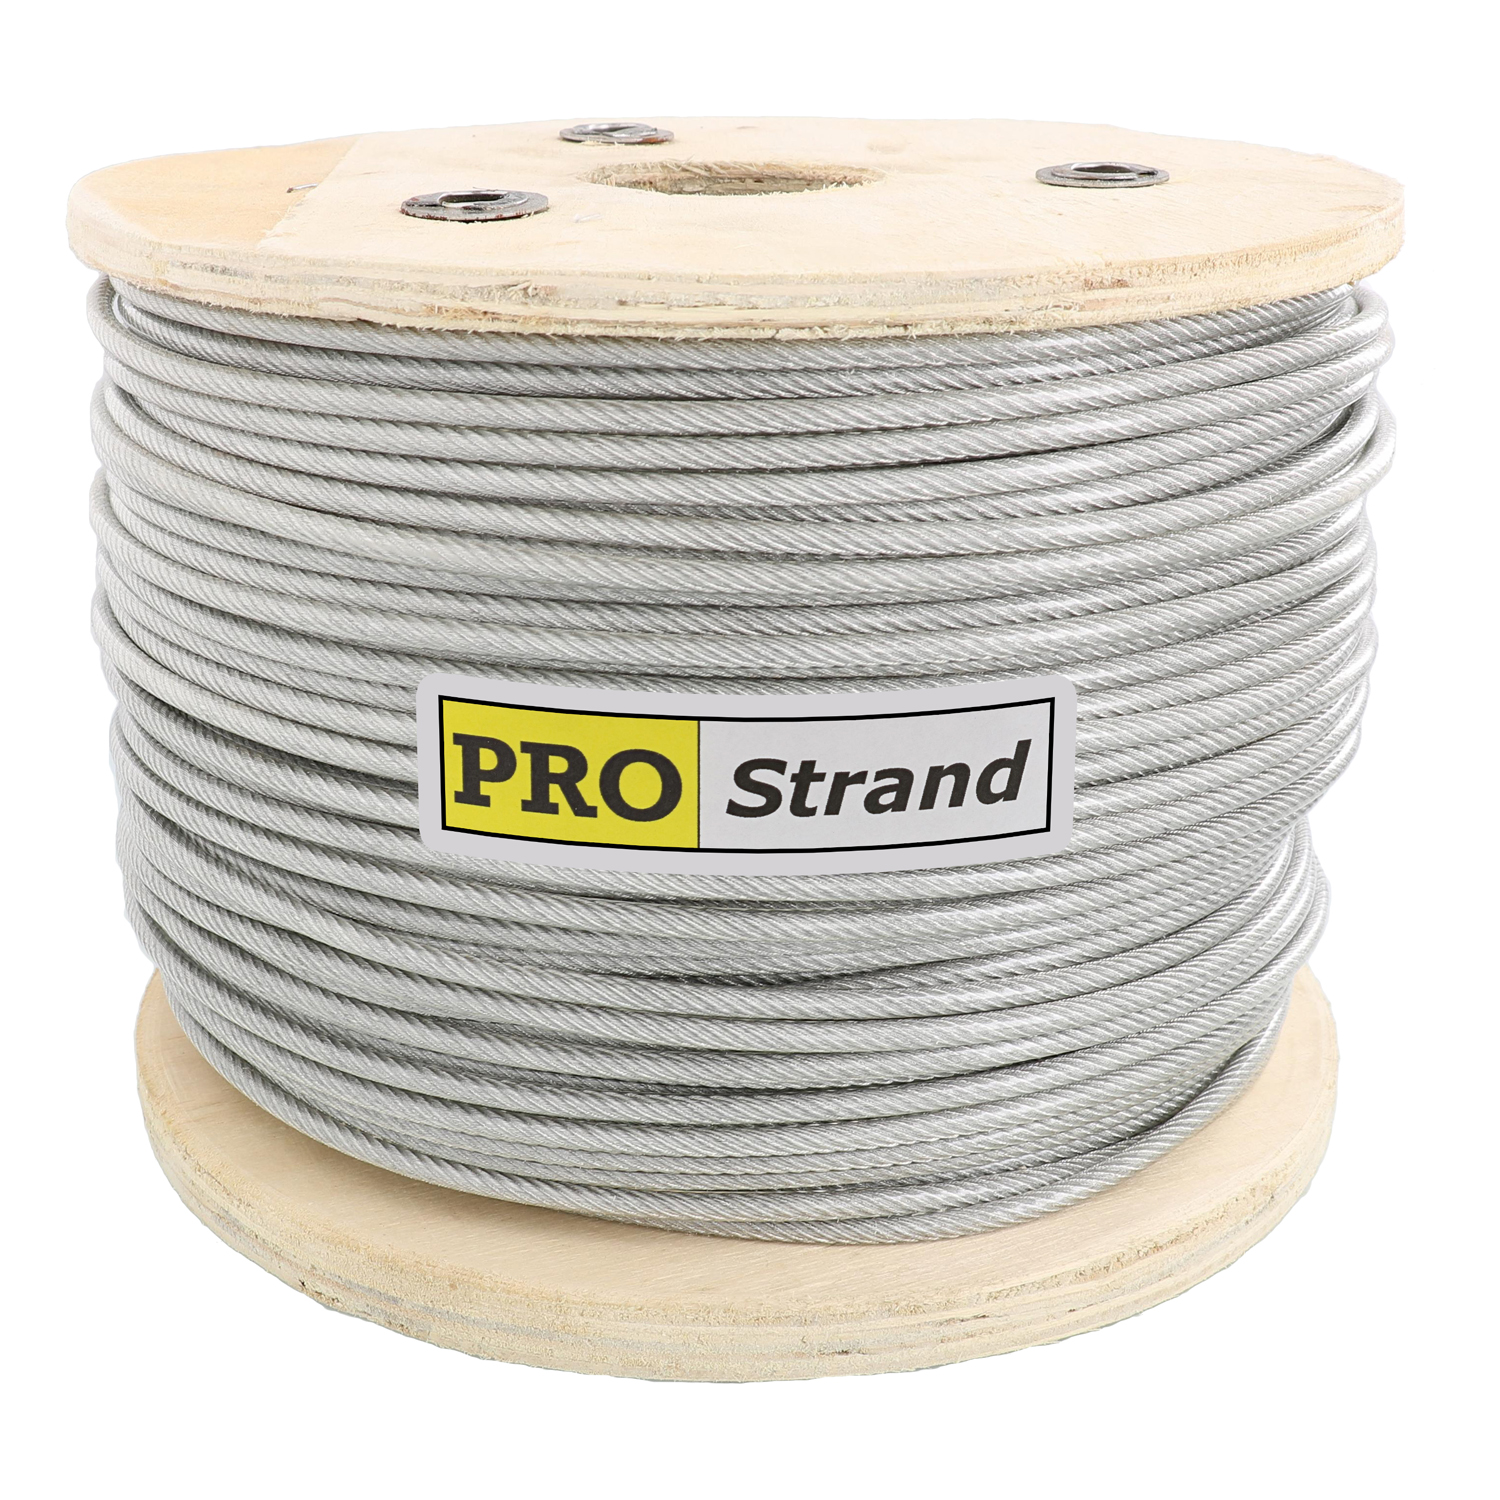 7 x 19 Type 304 Vinyl Coated Stainless Steel Cable